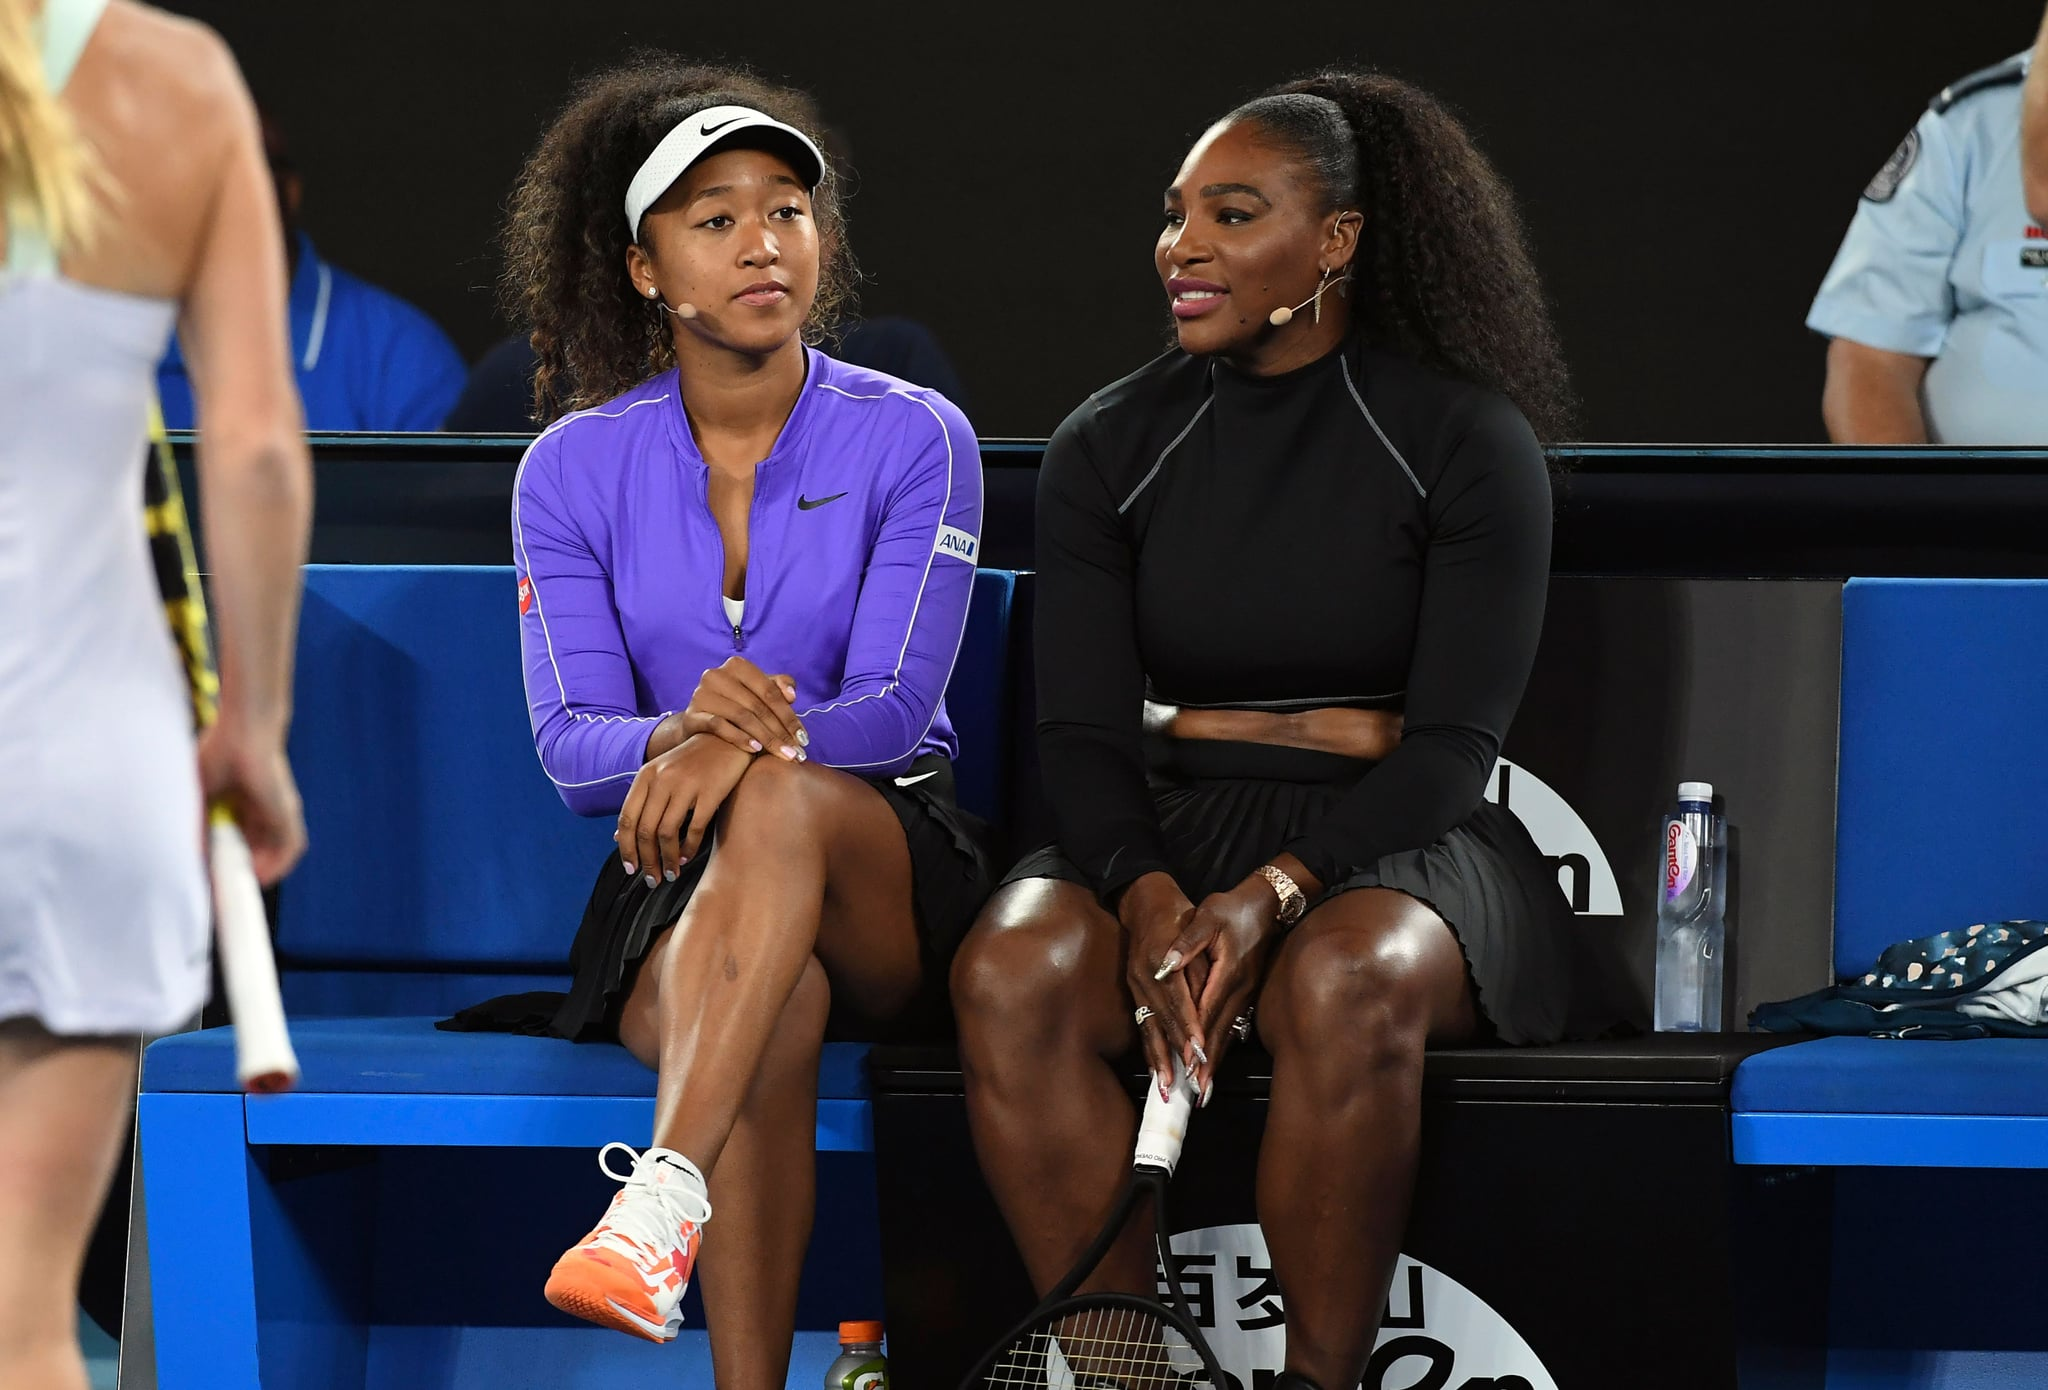 Naomi Osaka of Japan (L) and Serena Williams of the US (R) share a lighter moment as they and other top players play in the Rally for Relief charity tennis match in support of the victims of the Australian bushfires, in Melbourne of January 15, 2020, ahead of the Australian Open tennis tournament. (Photo by WILLIAM WEST / AFP) / -- IMAGE RESTRICTED TO EDITORIAL USE - STRICTLY NO COMMERCIAL USE -- (Photo by WILLIAM WEST/AFP via Getty Images)